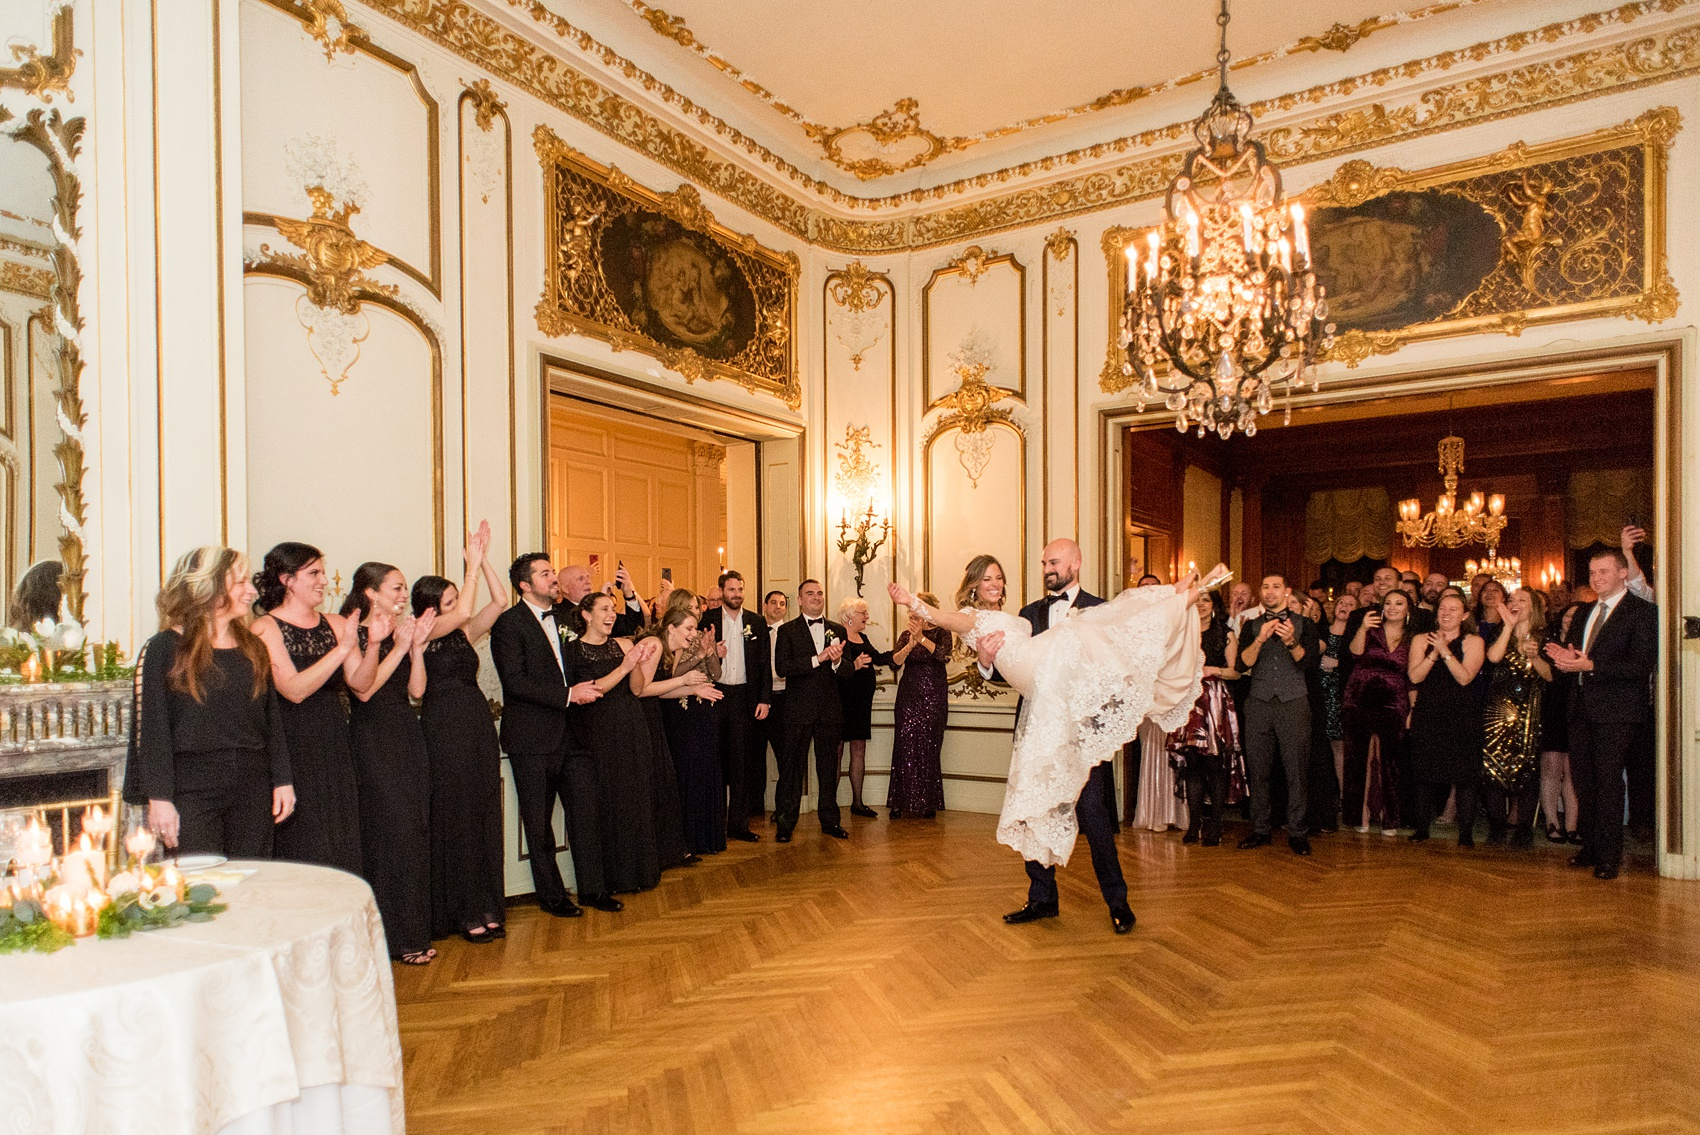 Wedding photos at Sleepy Hollow Country Club for a winter reception in January by Mikkel Paige Photography. They shared their first dance at their NY winter wedding, inside the ornate center room of the venue and ended with the groom lifting the bride for a twirl!